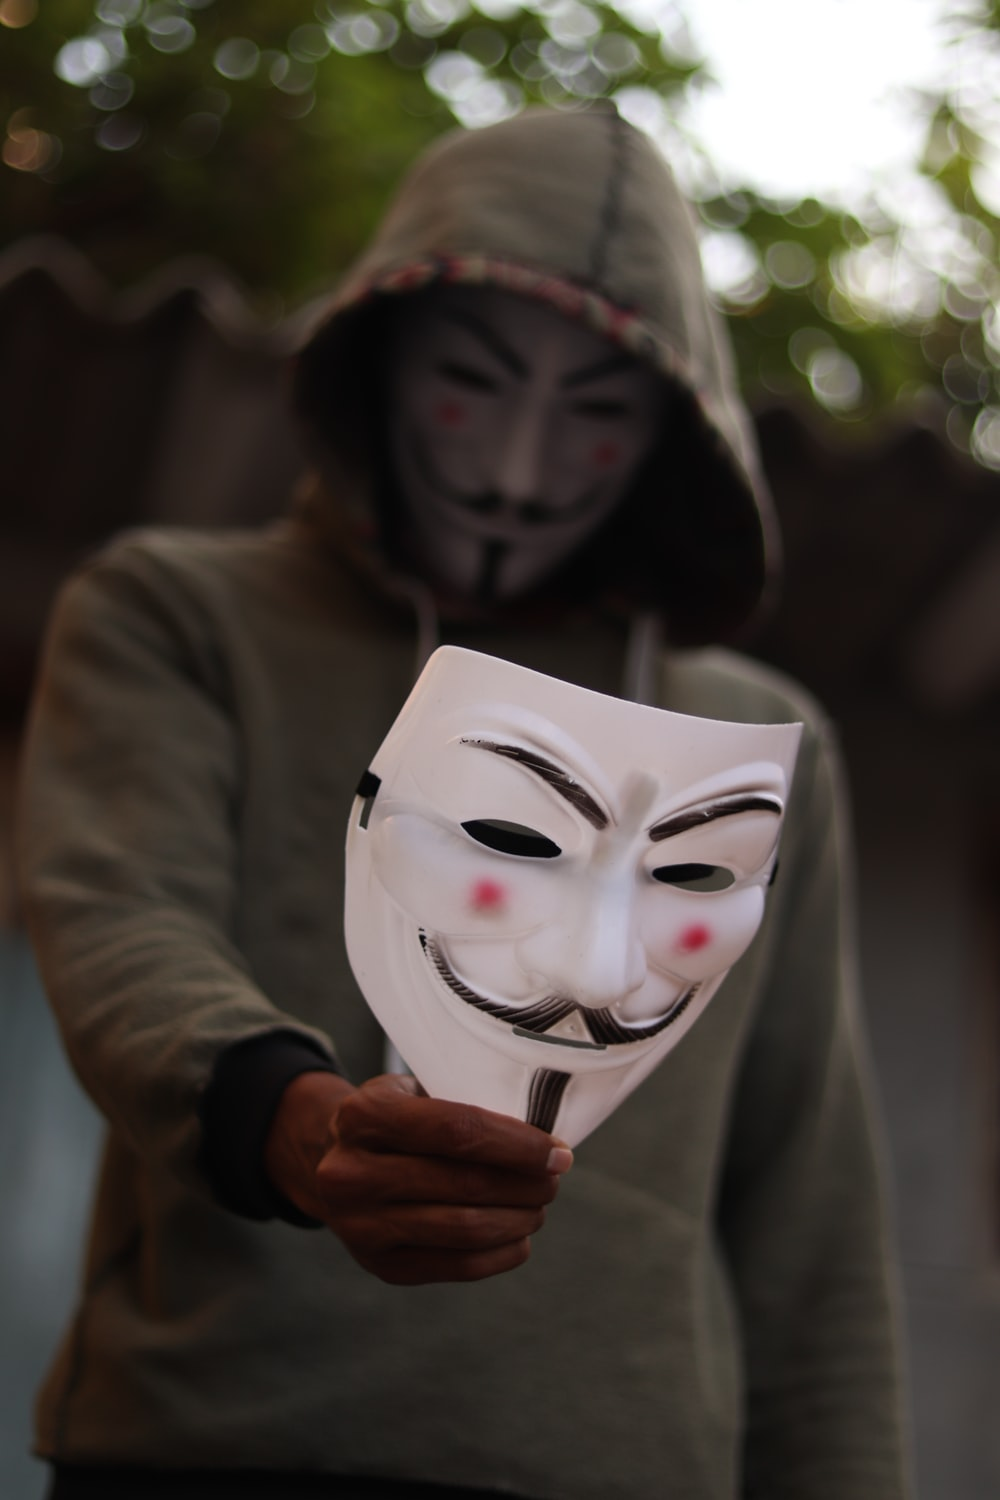 person standing and wearing Guy Fawke mask and holding another one